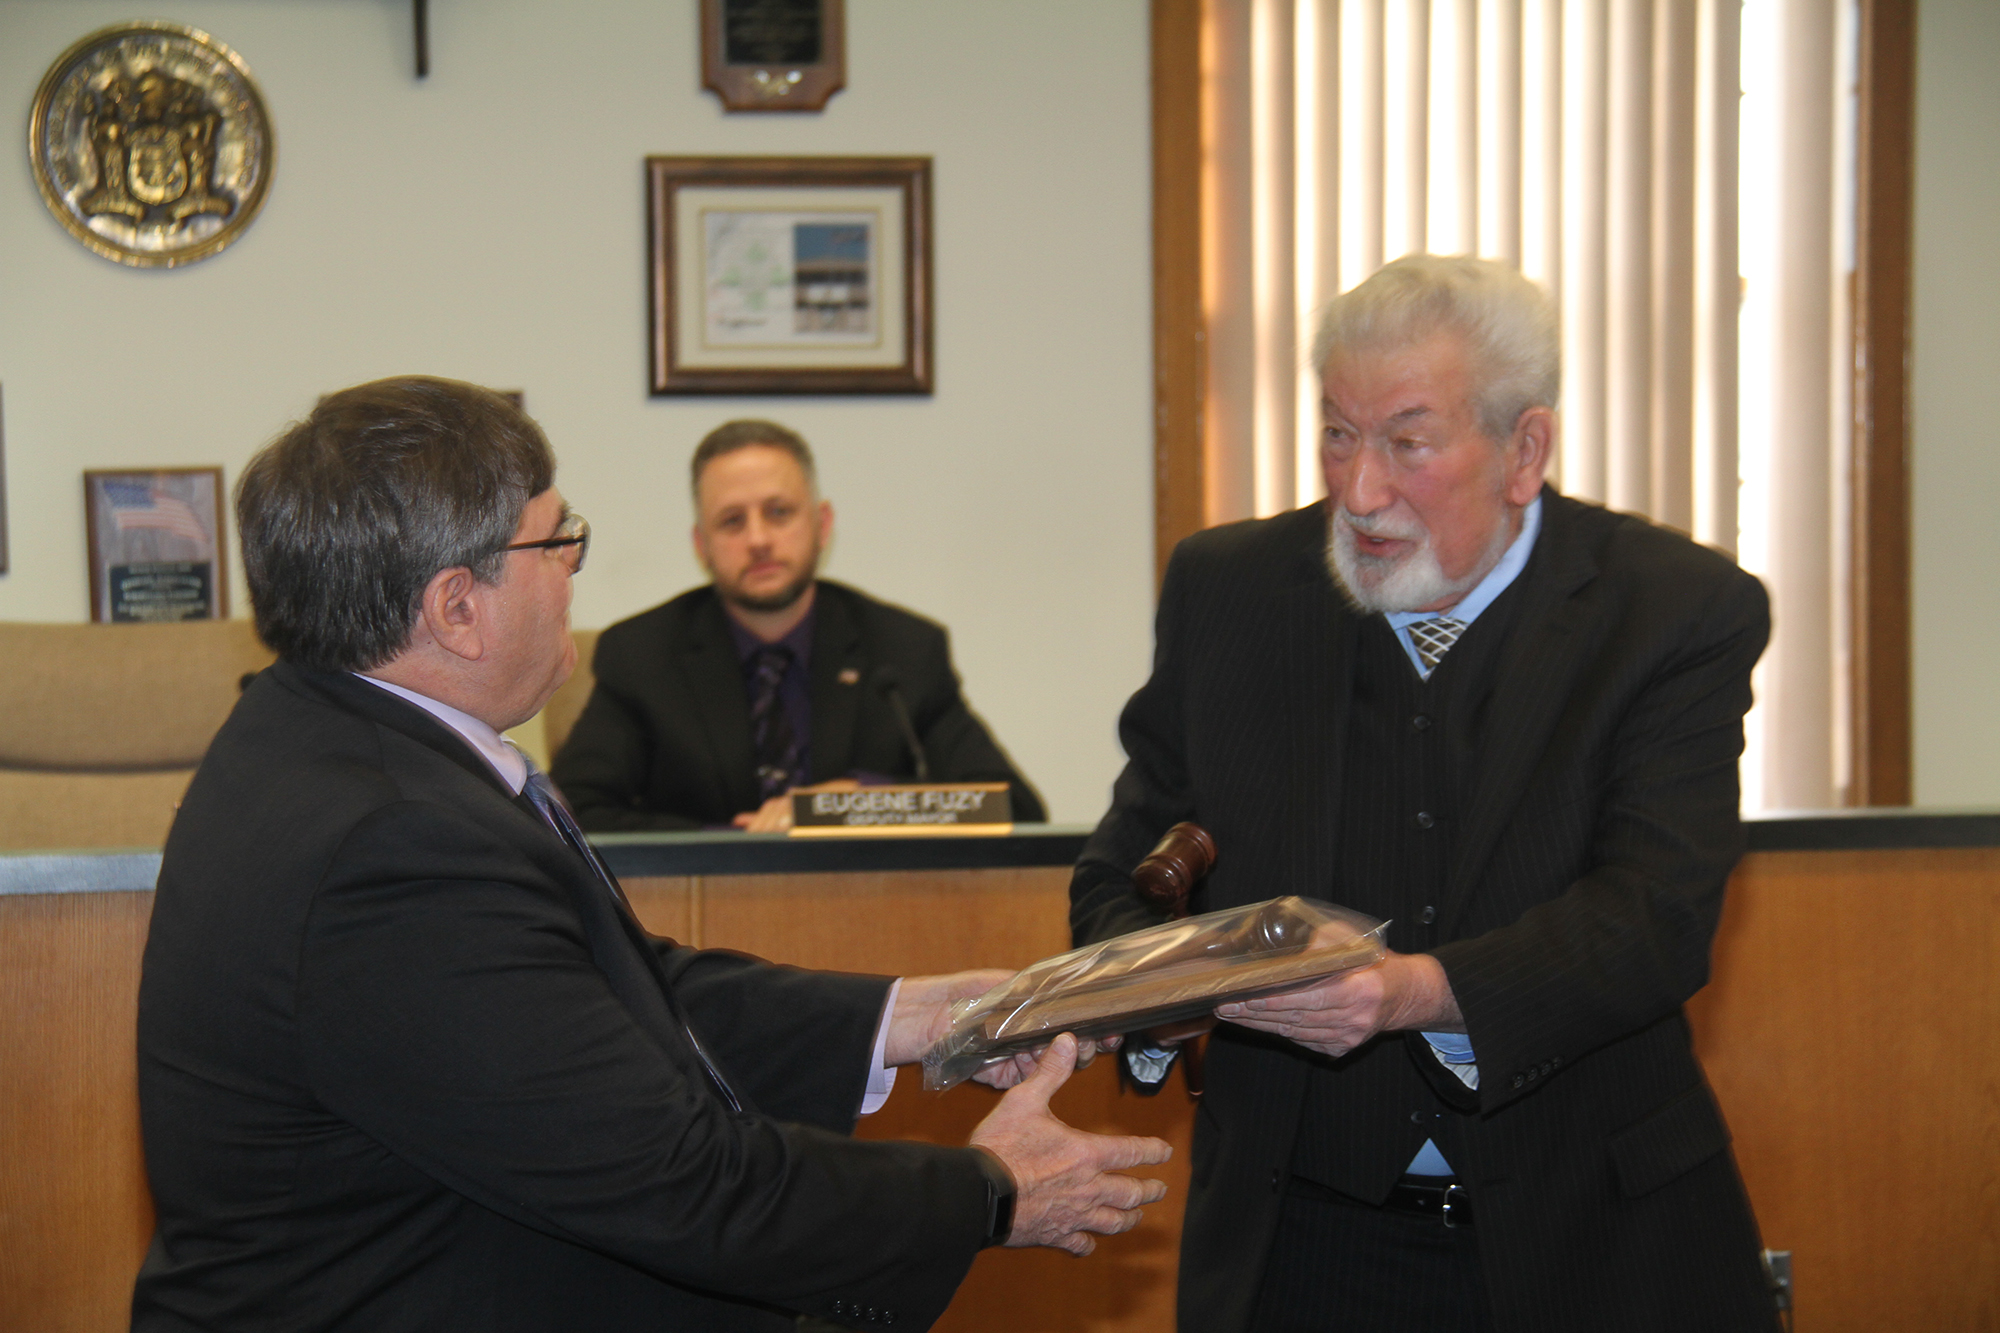 Passing_of_the_Gavel_from_former_Mayor_Jim_Cann_to_Current_Mayor_Steve_Benowitz.JPG